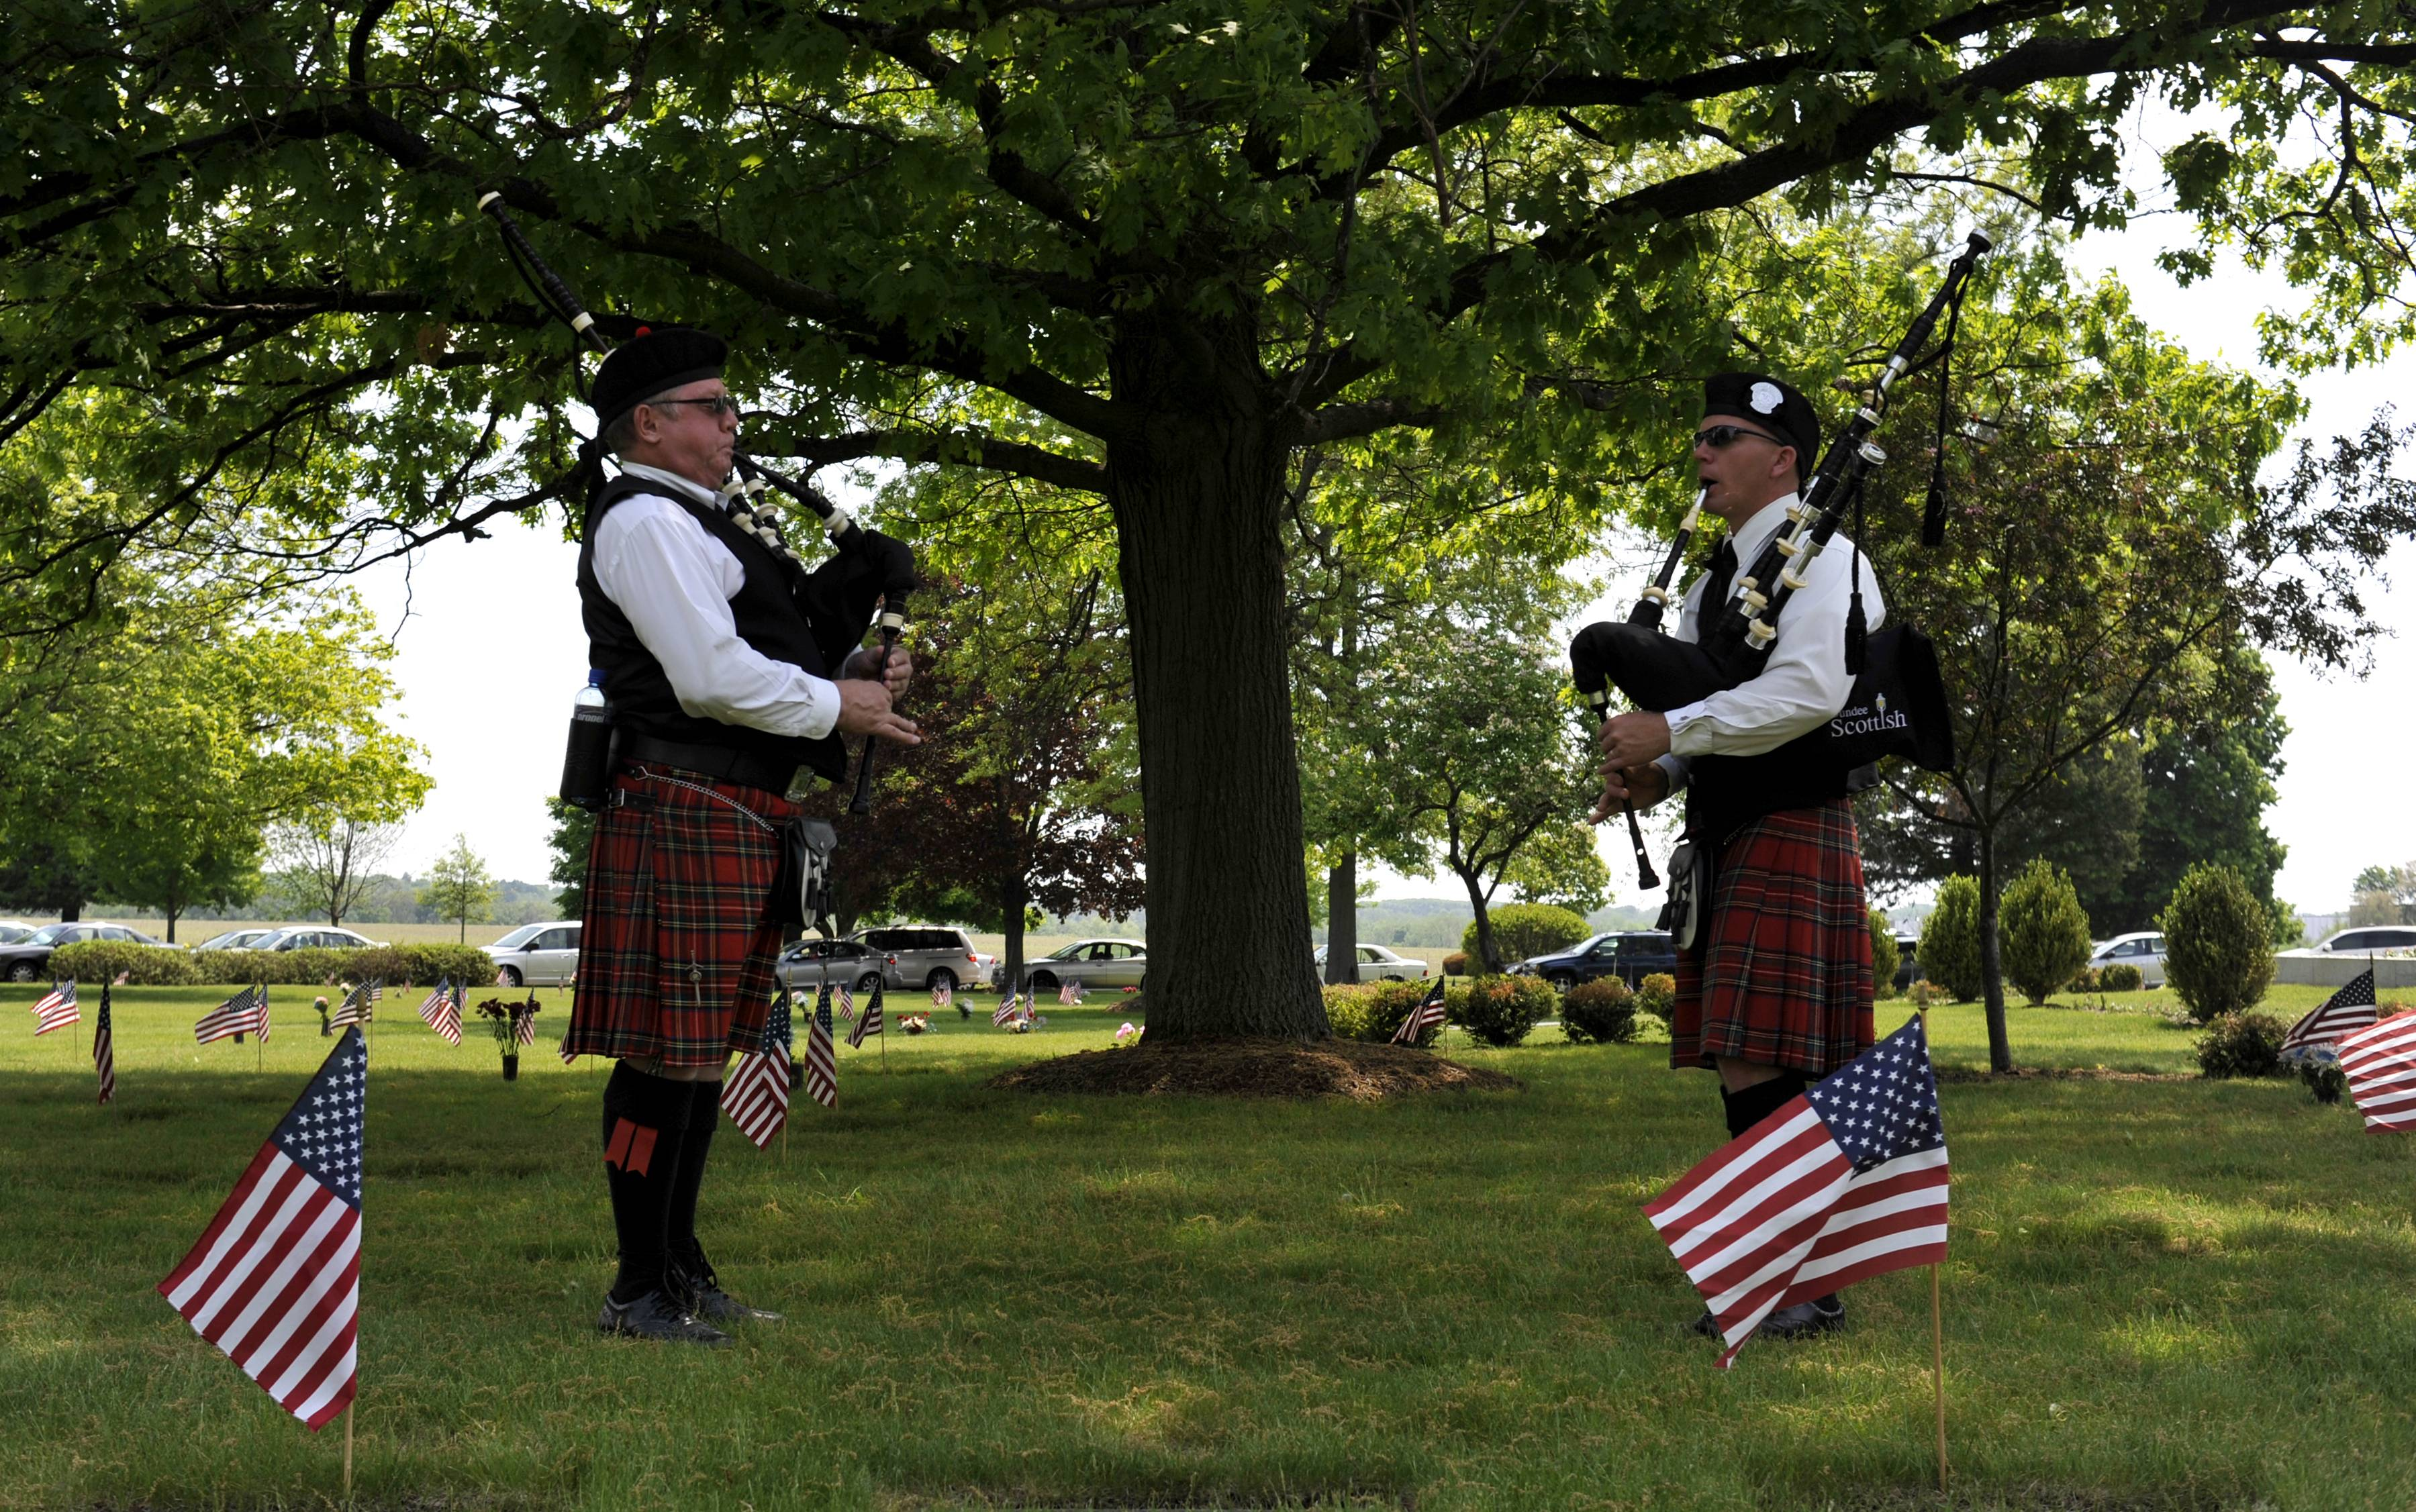 Mark Kilgore of Carol Stream (left) and John Cunningham of Elgin (right) play bagpipes before the start of the Memorial Day Service at River Valley Memorial Gardens in West Dundee on Monday, May 26. Kilgore and Cunningham are members of the Dundee Scottish Pipe Band.